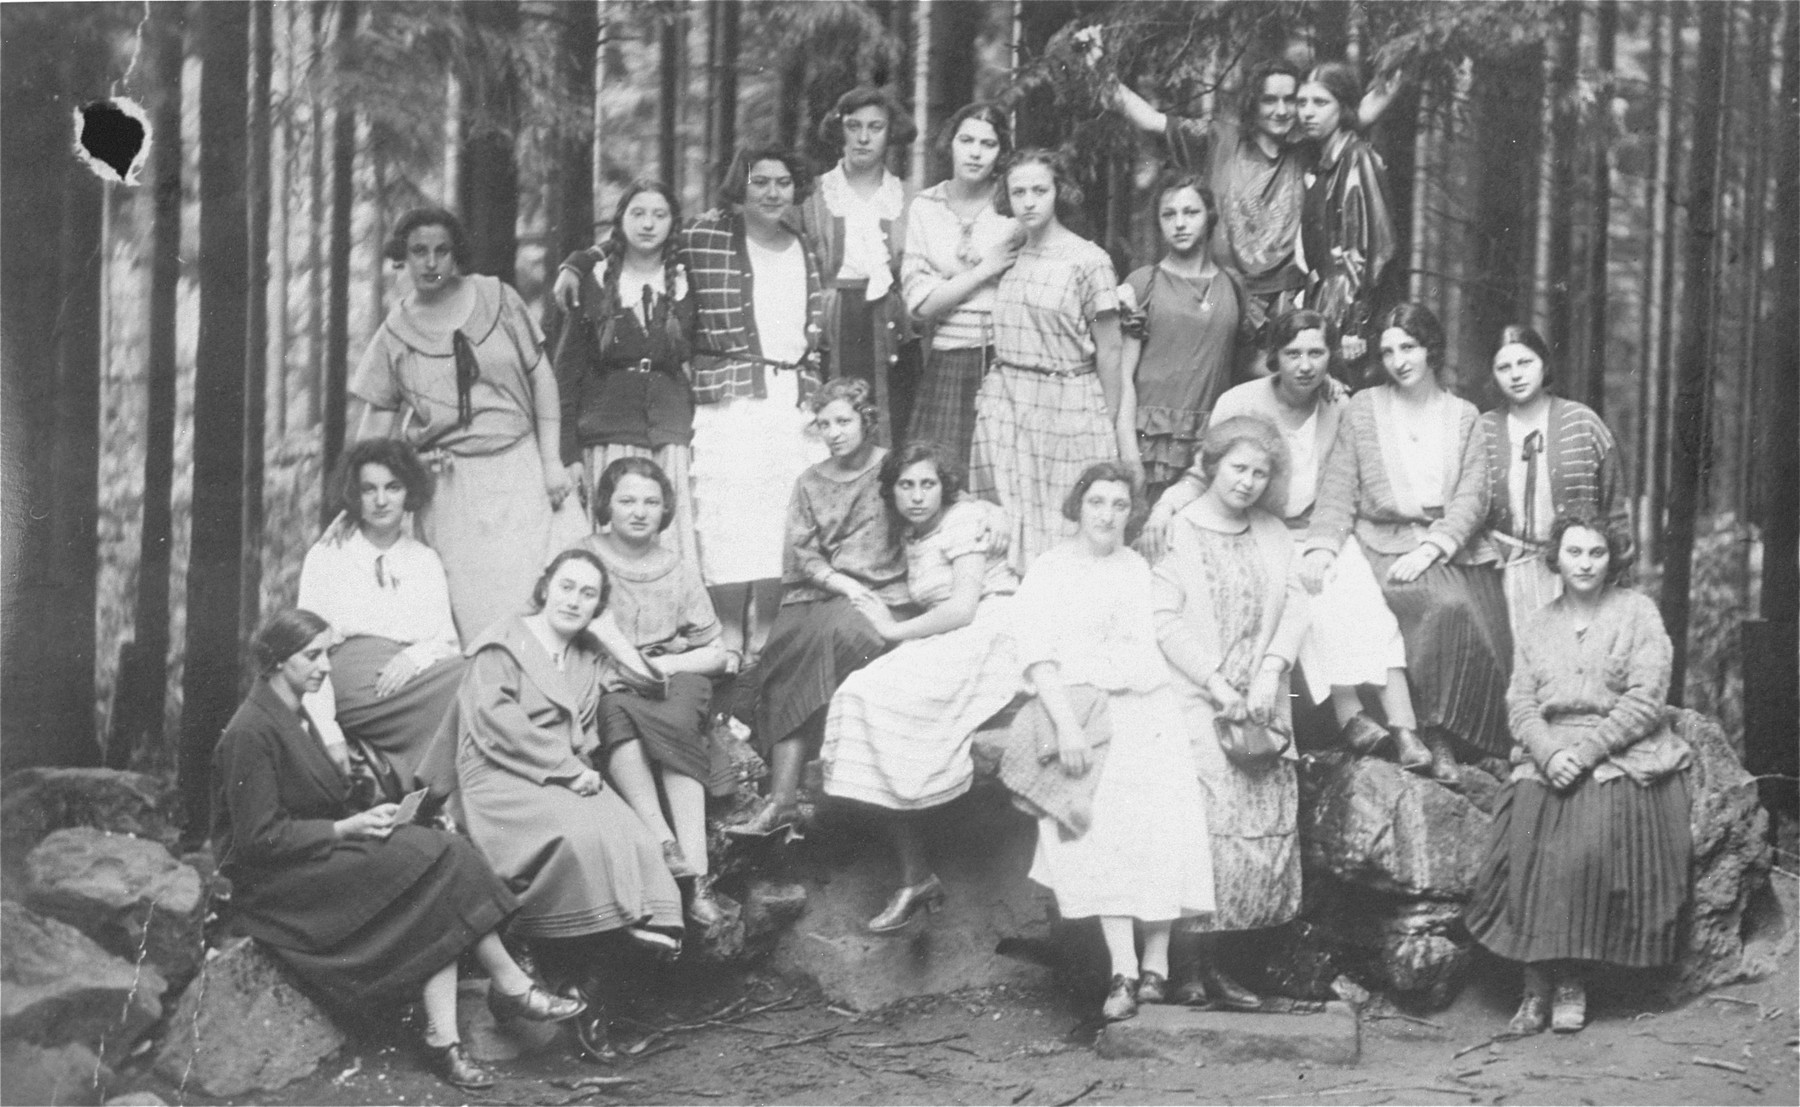 Group portrait of students from the Rosenthaler school for religious girls (Frankfurt am Main) on a class trip to Heidelberg.  The donor, Magda Herzog is pictured seated in the second row, second from the left (behind the woman who is leaning on one arm).